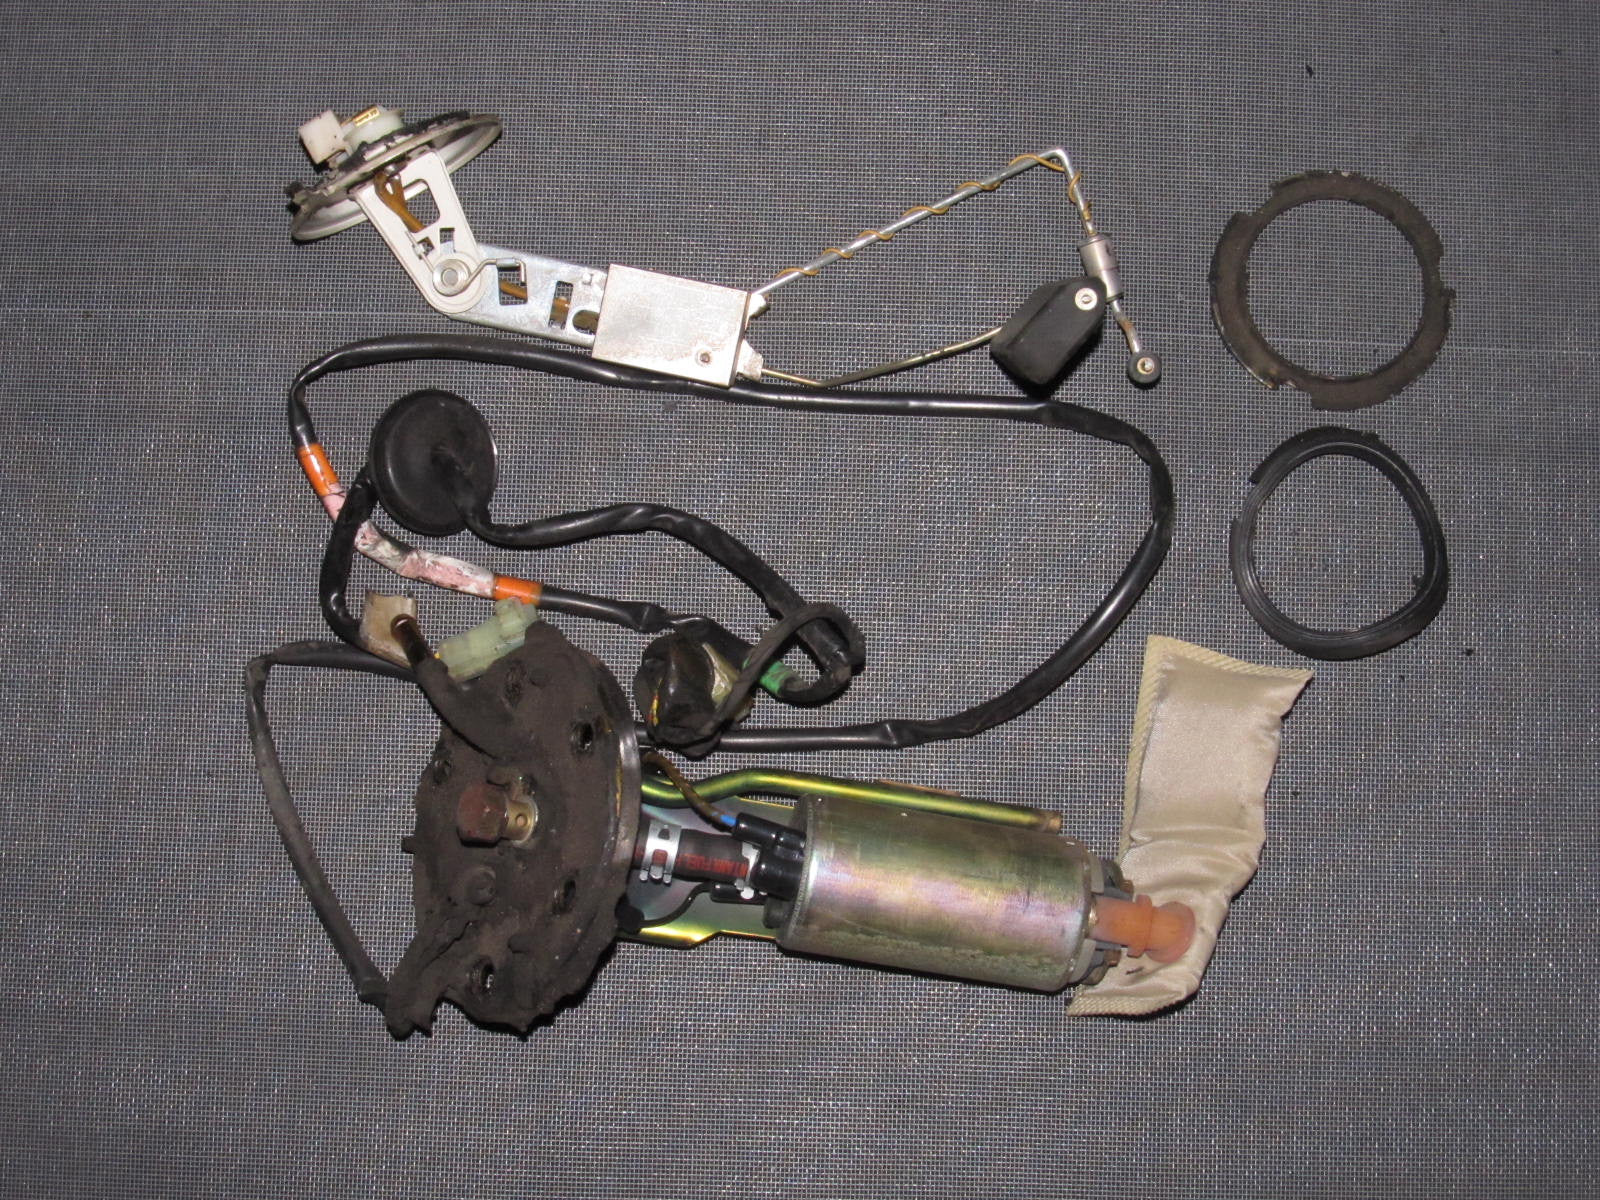 IMG_9527?v=1400700834 90 93 acura integra oem fuel pump with sending unit & floater  at gsmportal.co